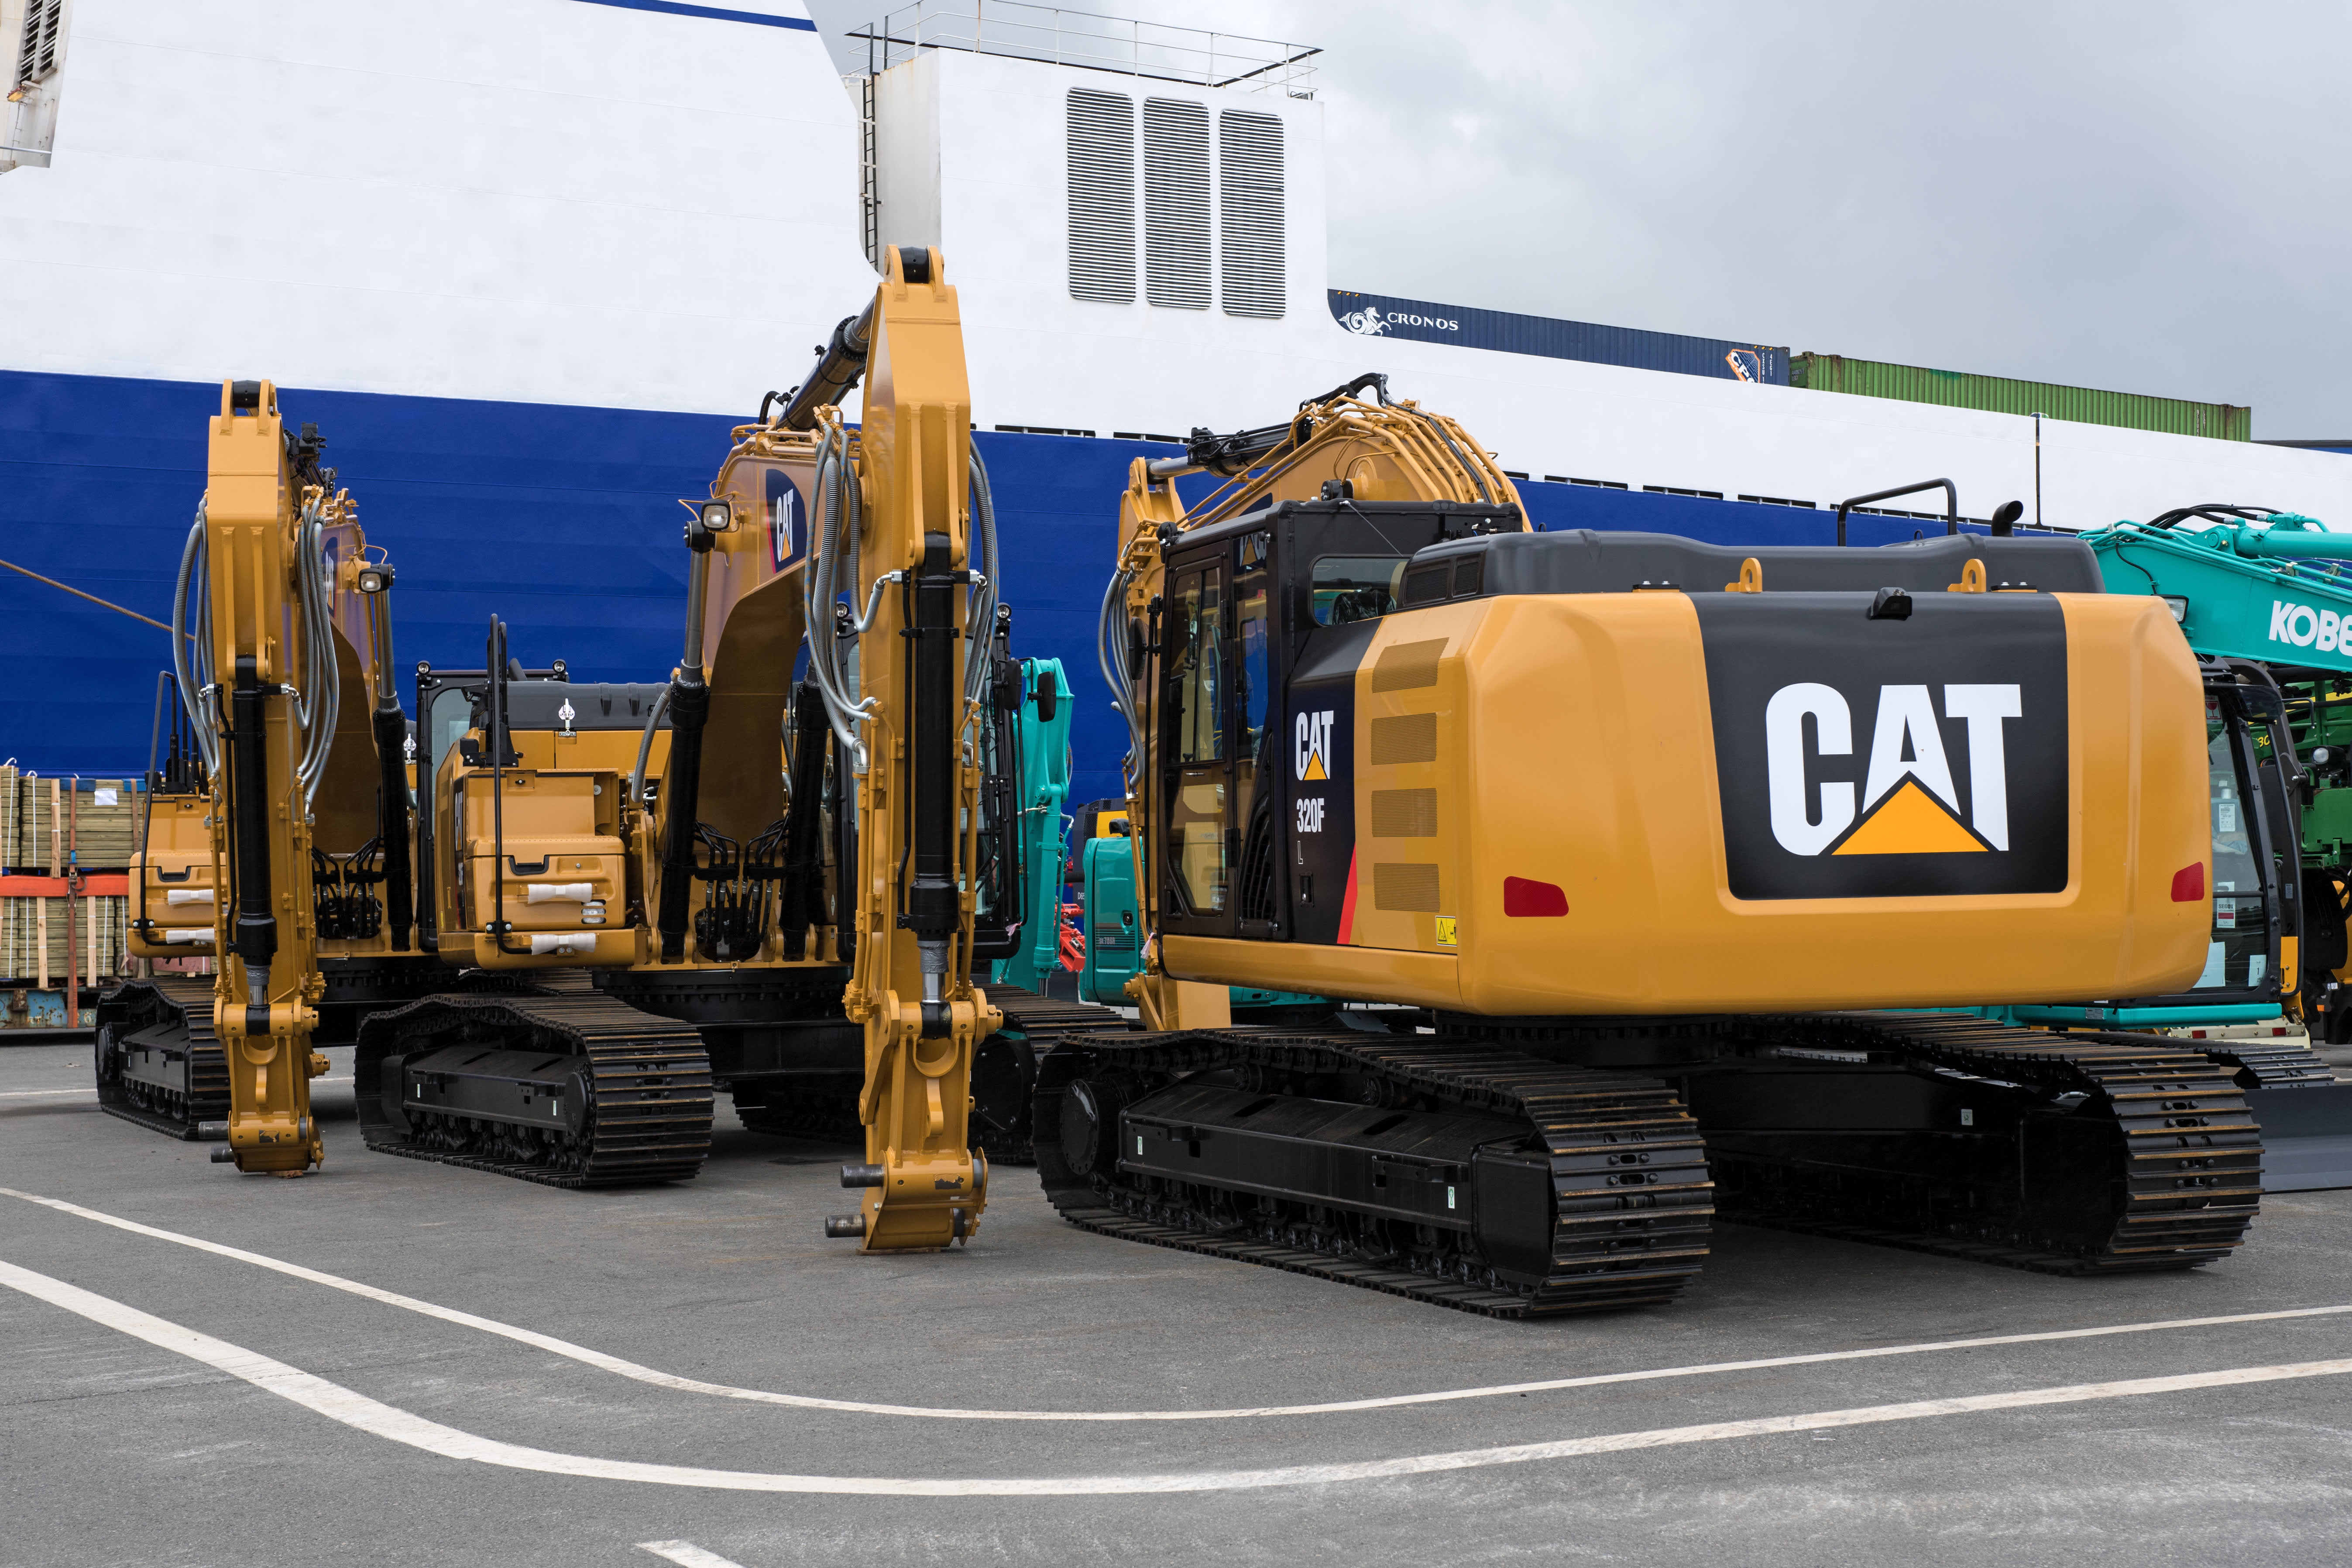 Stocks making the biggest moves midday: Caterpillar, SmileDirectClub, Oracle, Yelp & more